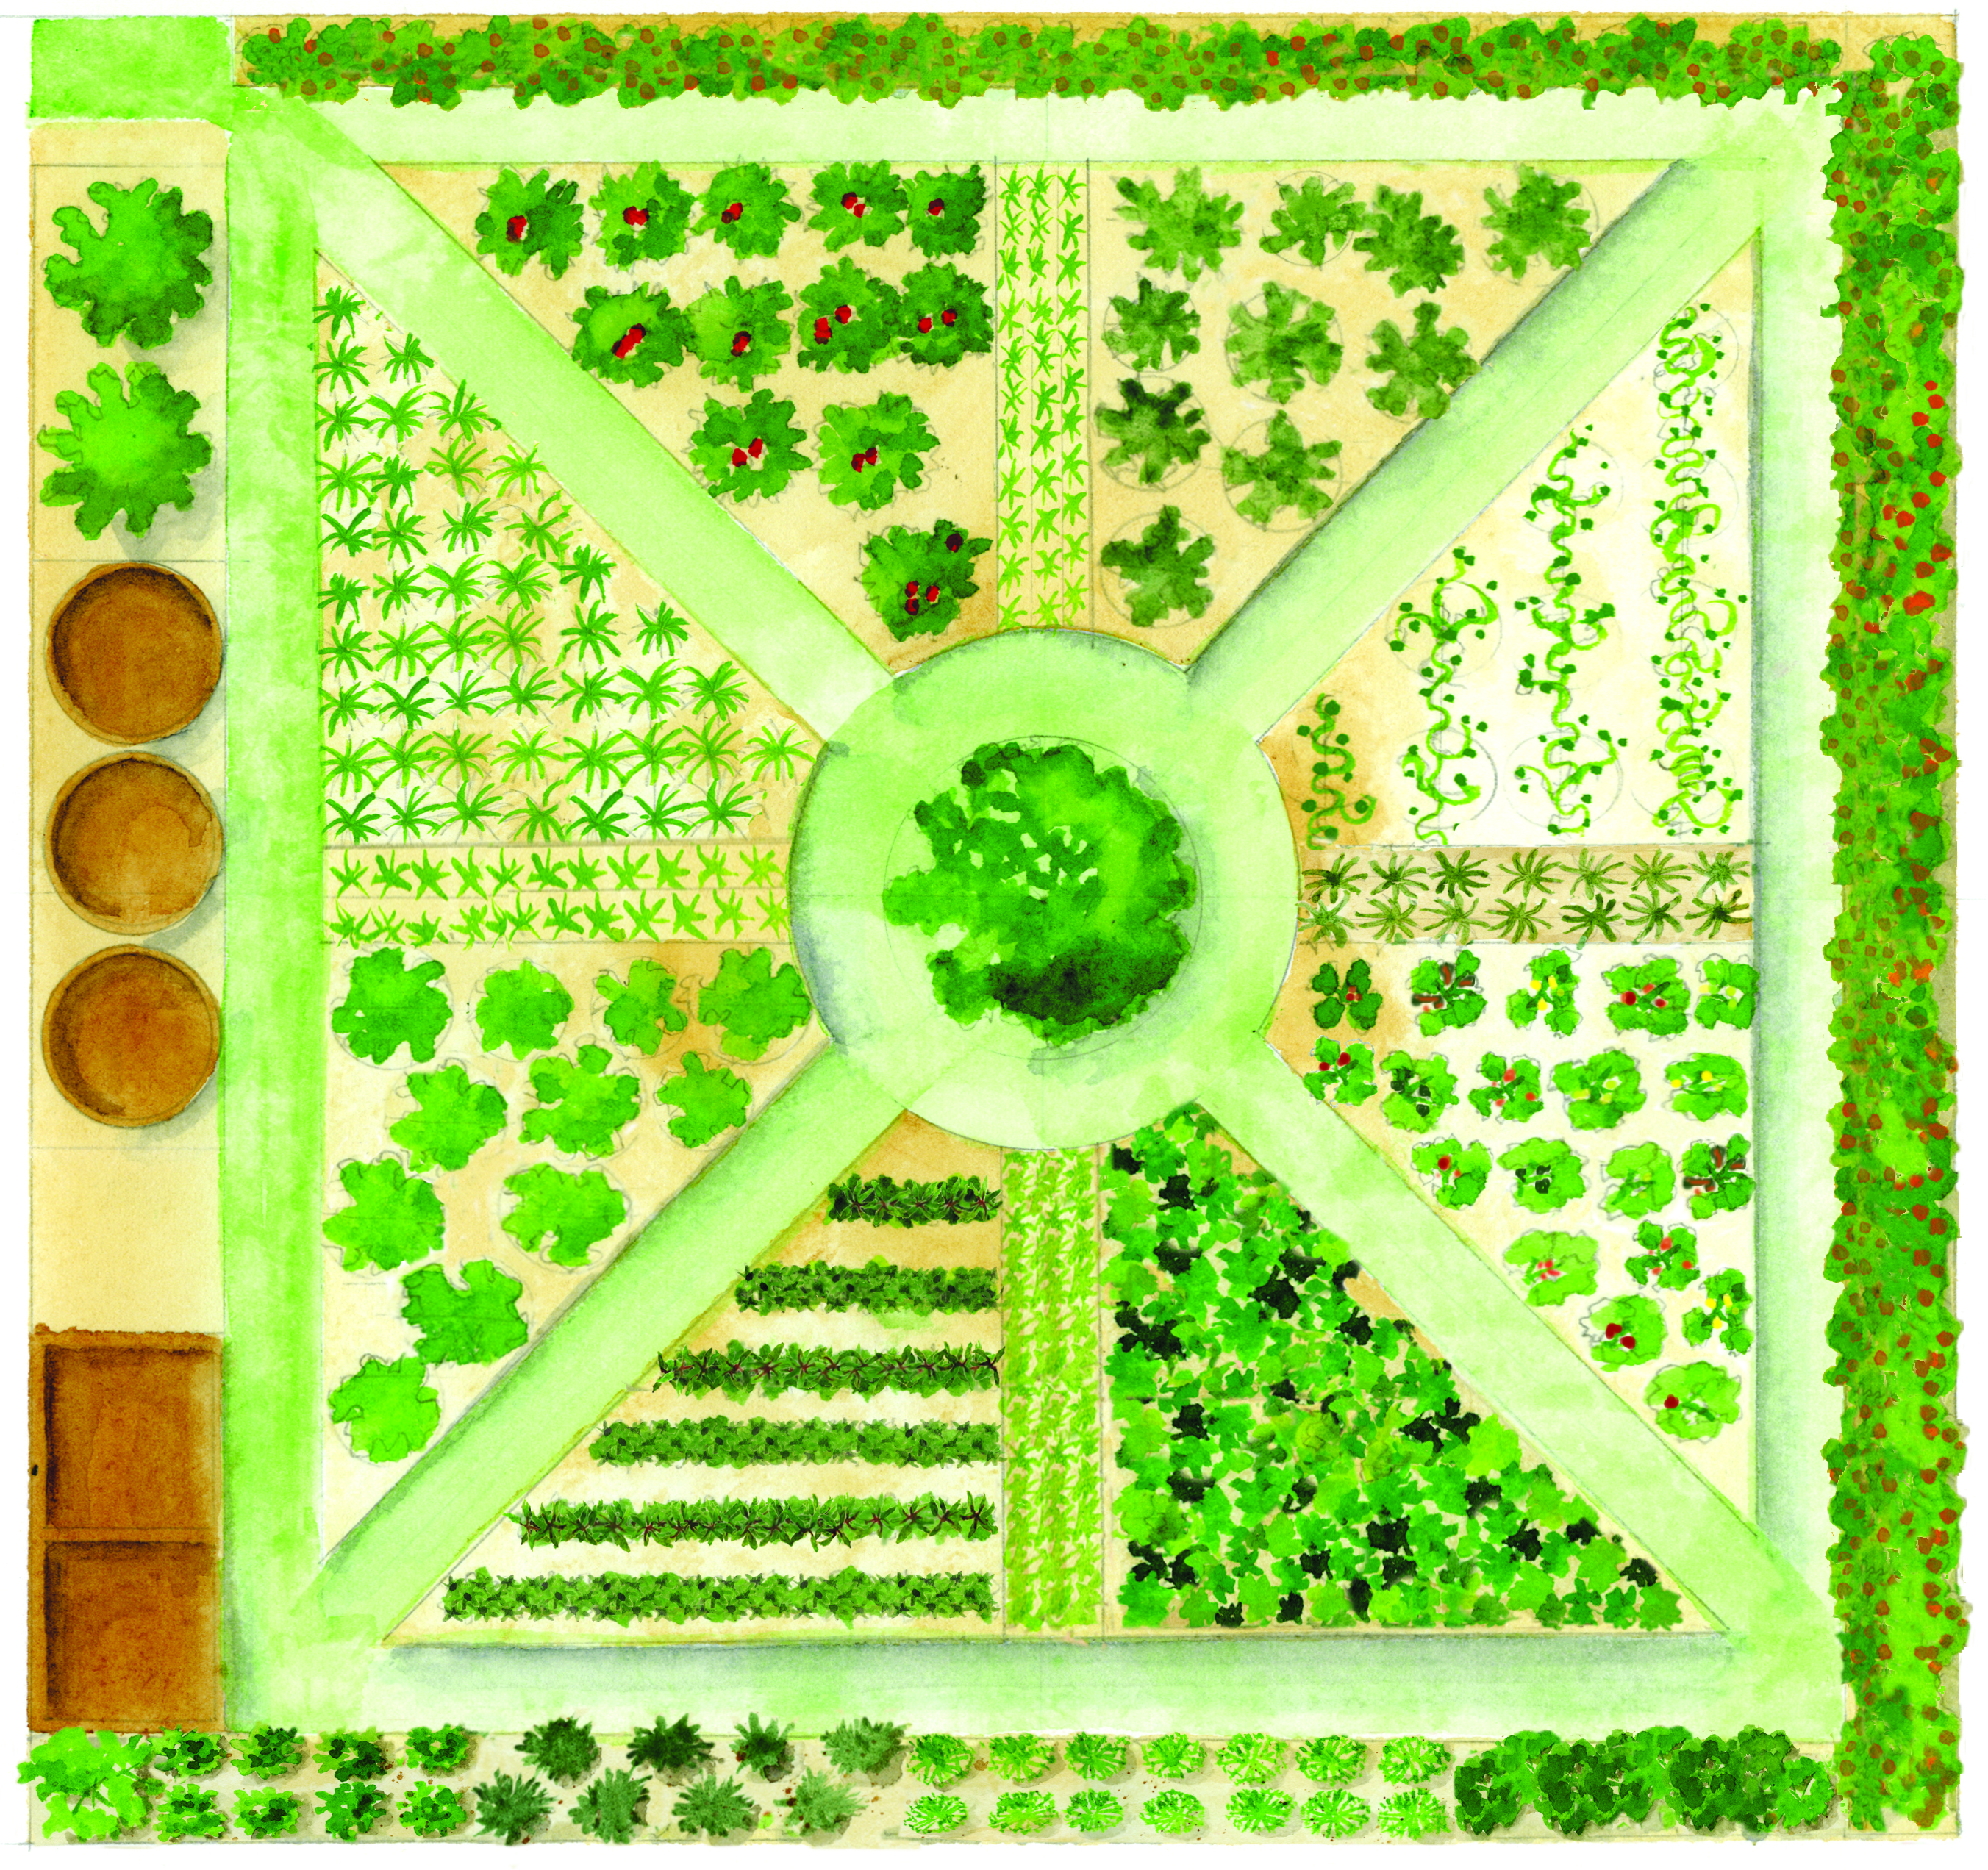 this slow food garden celebrates the local food movement